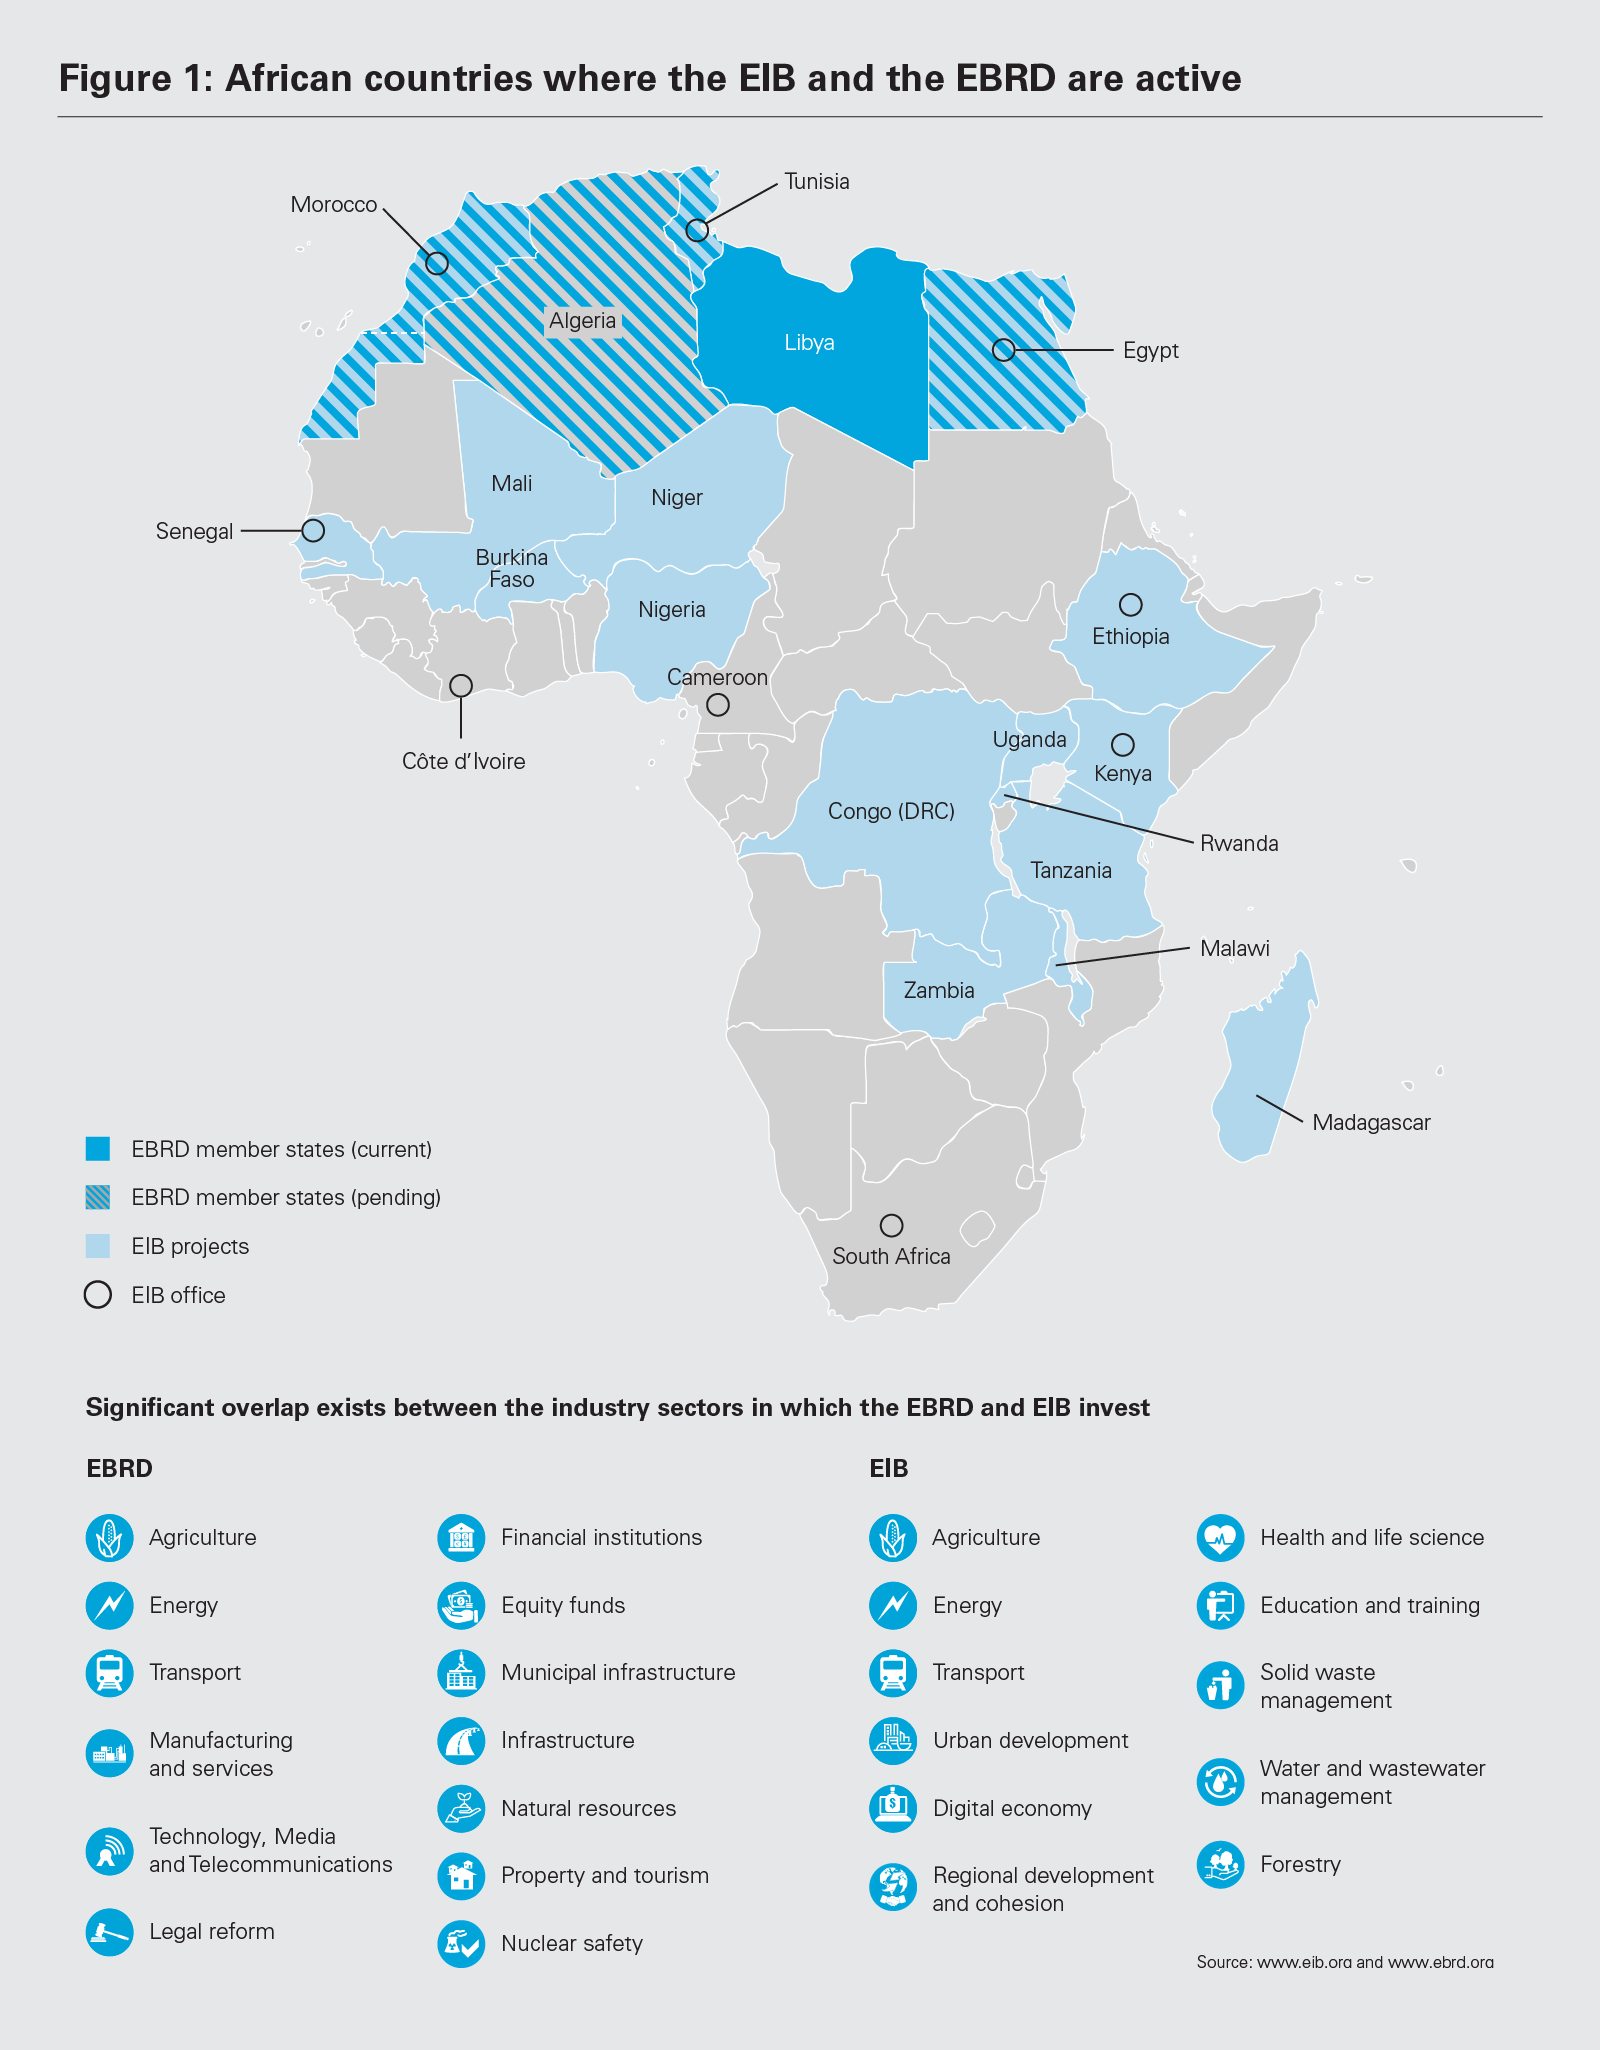 Figure 1: African countries where the EIB and the EBRD are active